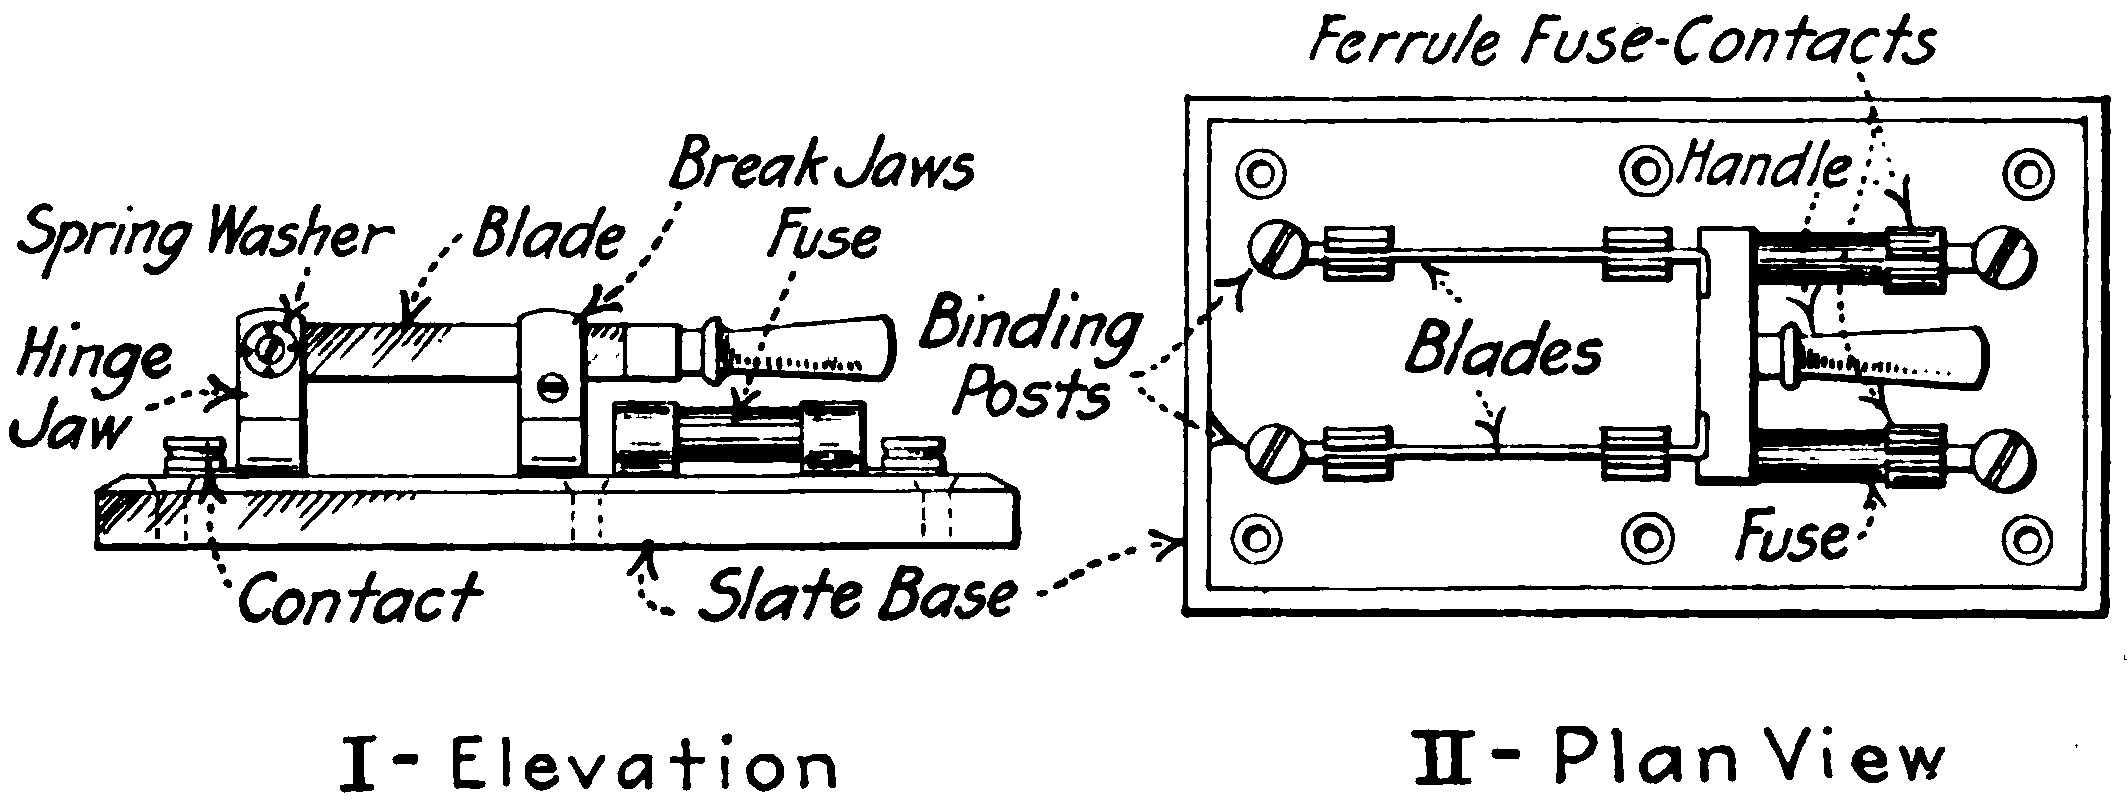 File:Two pole knife switch.png - Wikimedia Commons